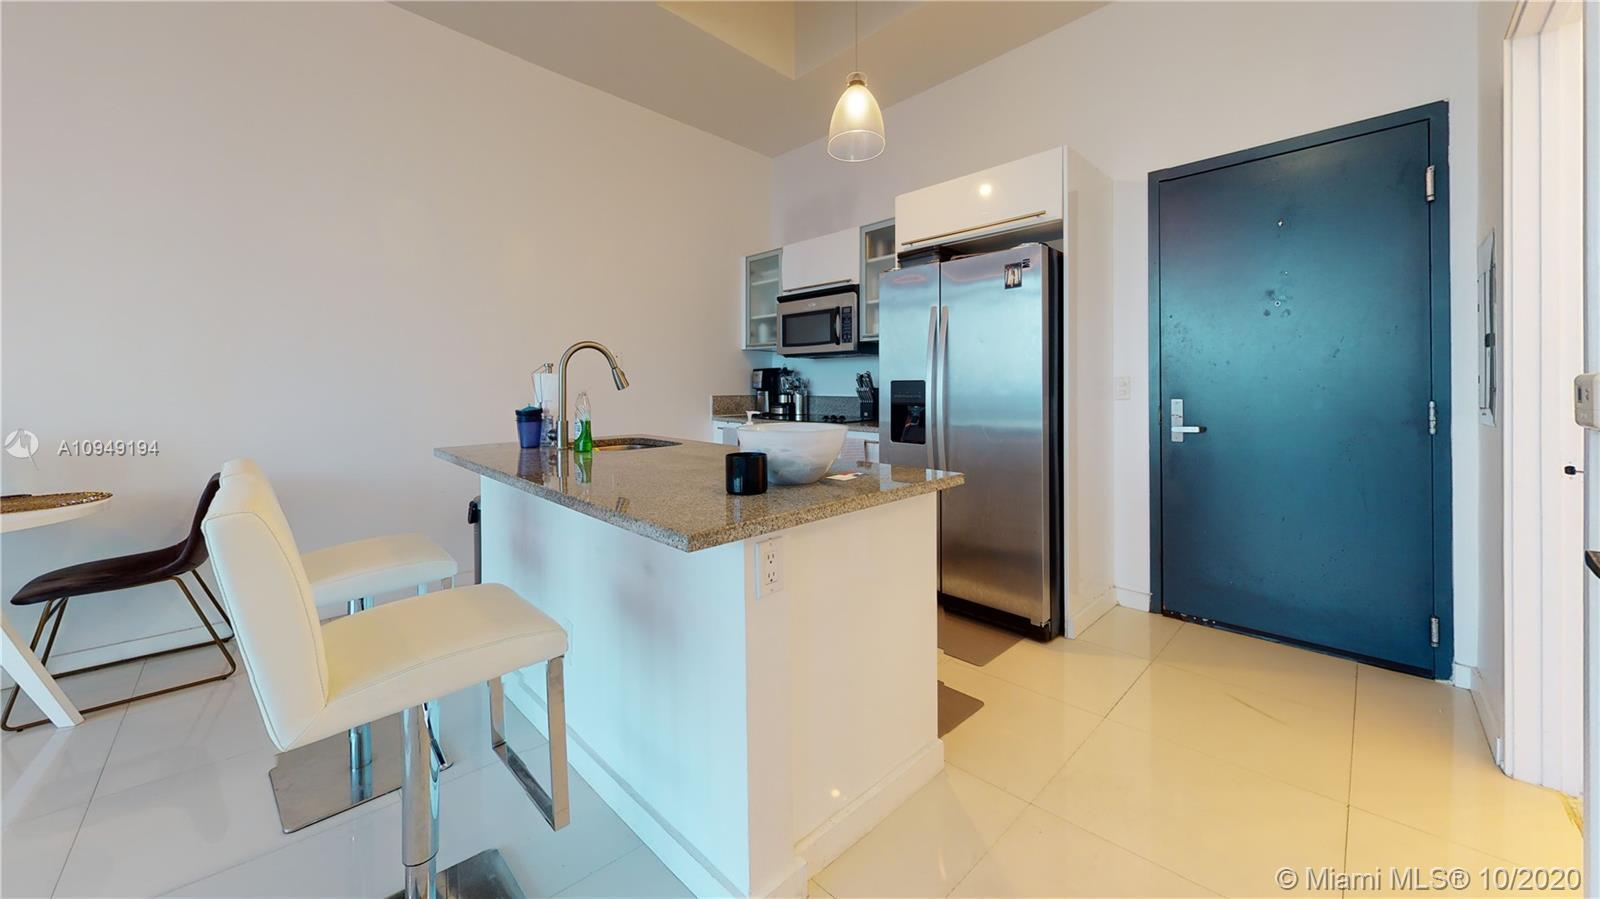 GORGEOUS 1 bedroom, 1.5 bath unit with floor to ceiling windows. Breathtaking water and city views f